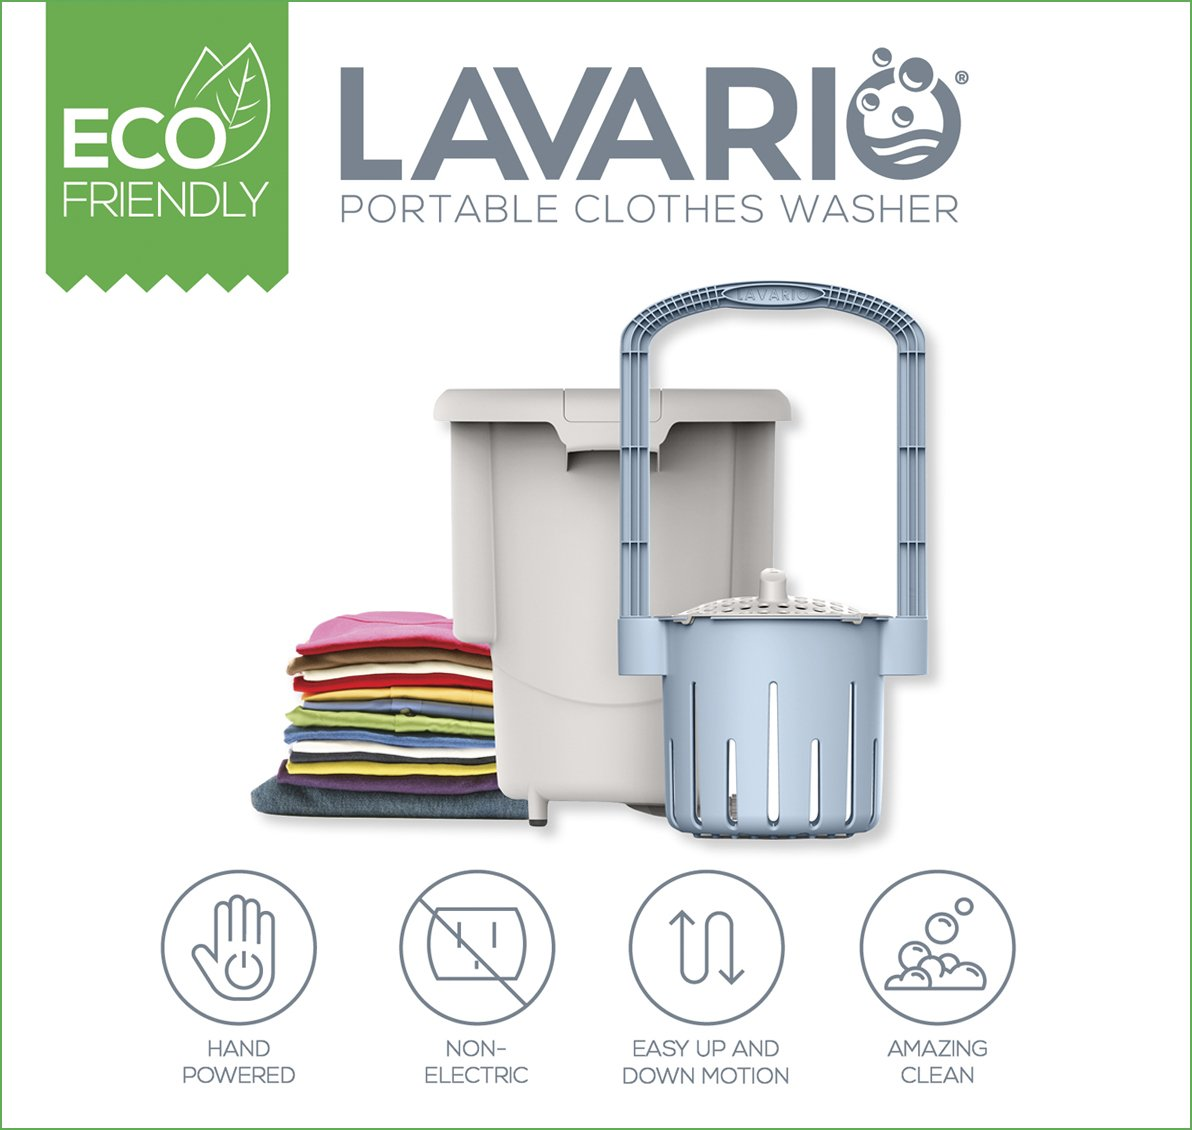 Manual Non-Electric Portable Washing Machine for Camping, Apartments, RV/'s, Delicates Lavario Portable Clothes Washer